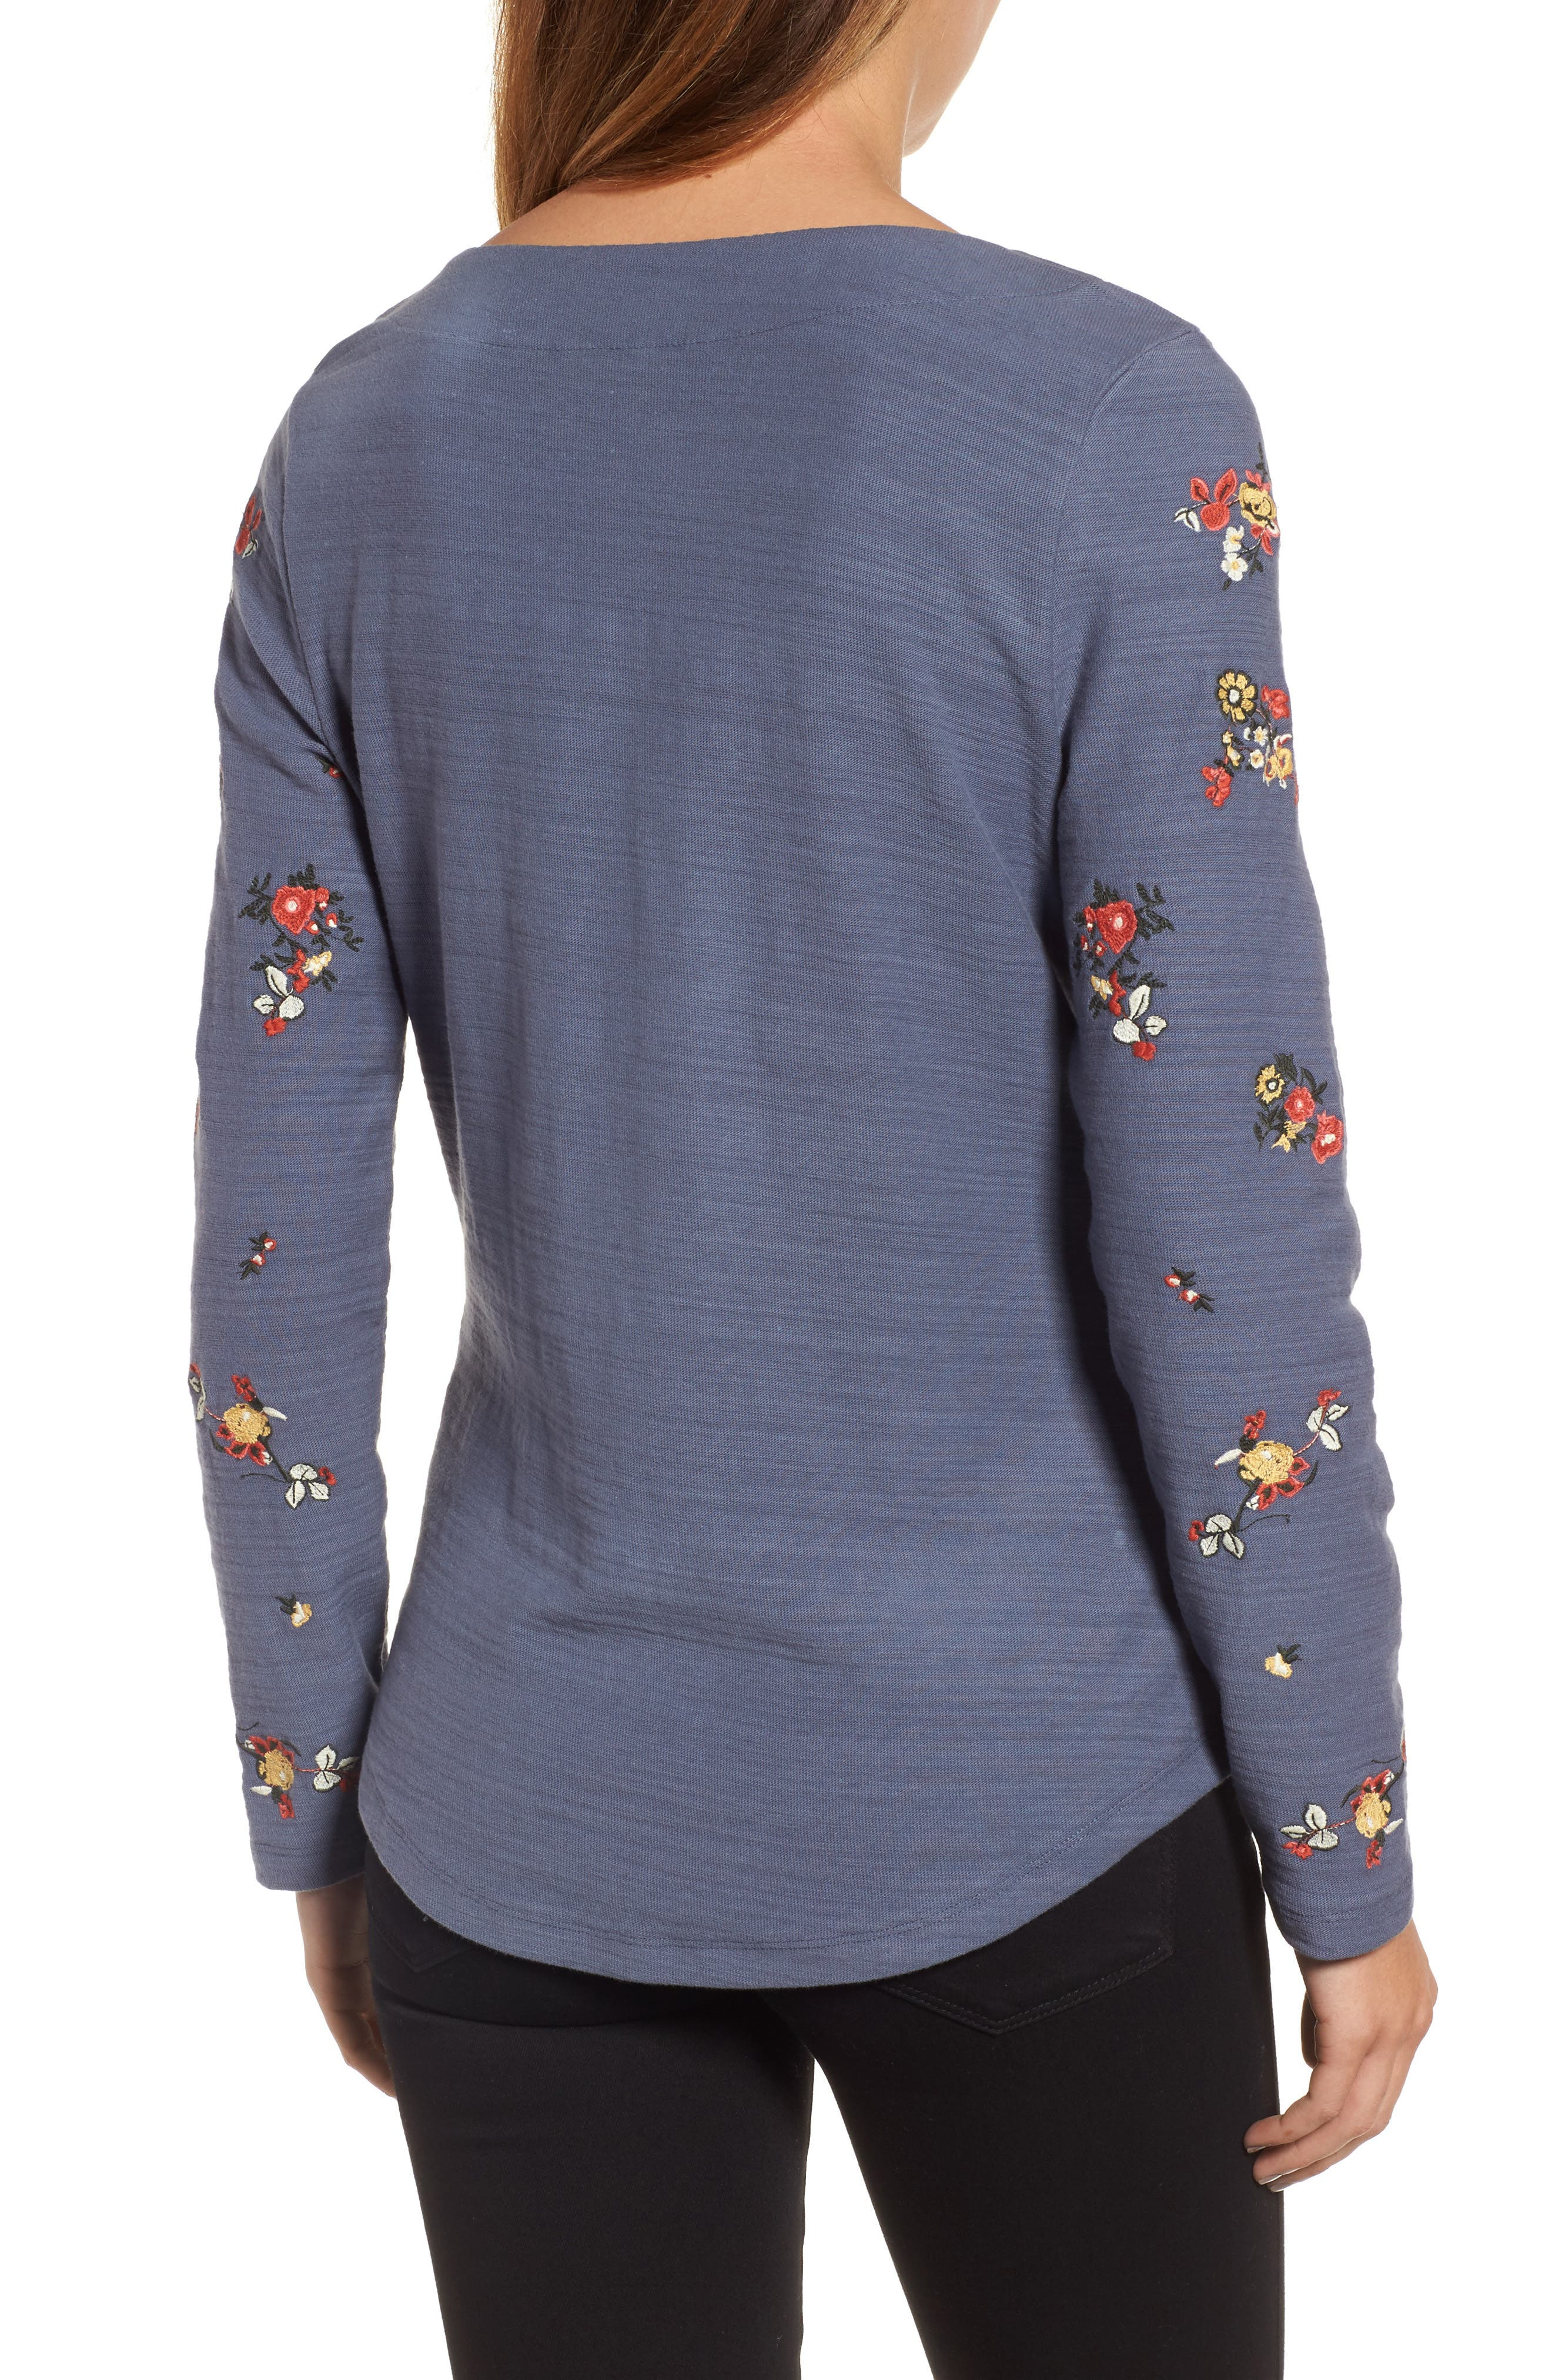 Lace-Up Neck Floral Embroidered Sweatshirt,                             Alternate thumbnail 2, color,                             Grey Floral